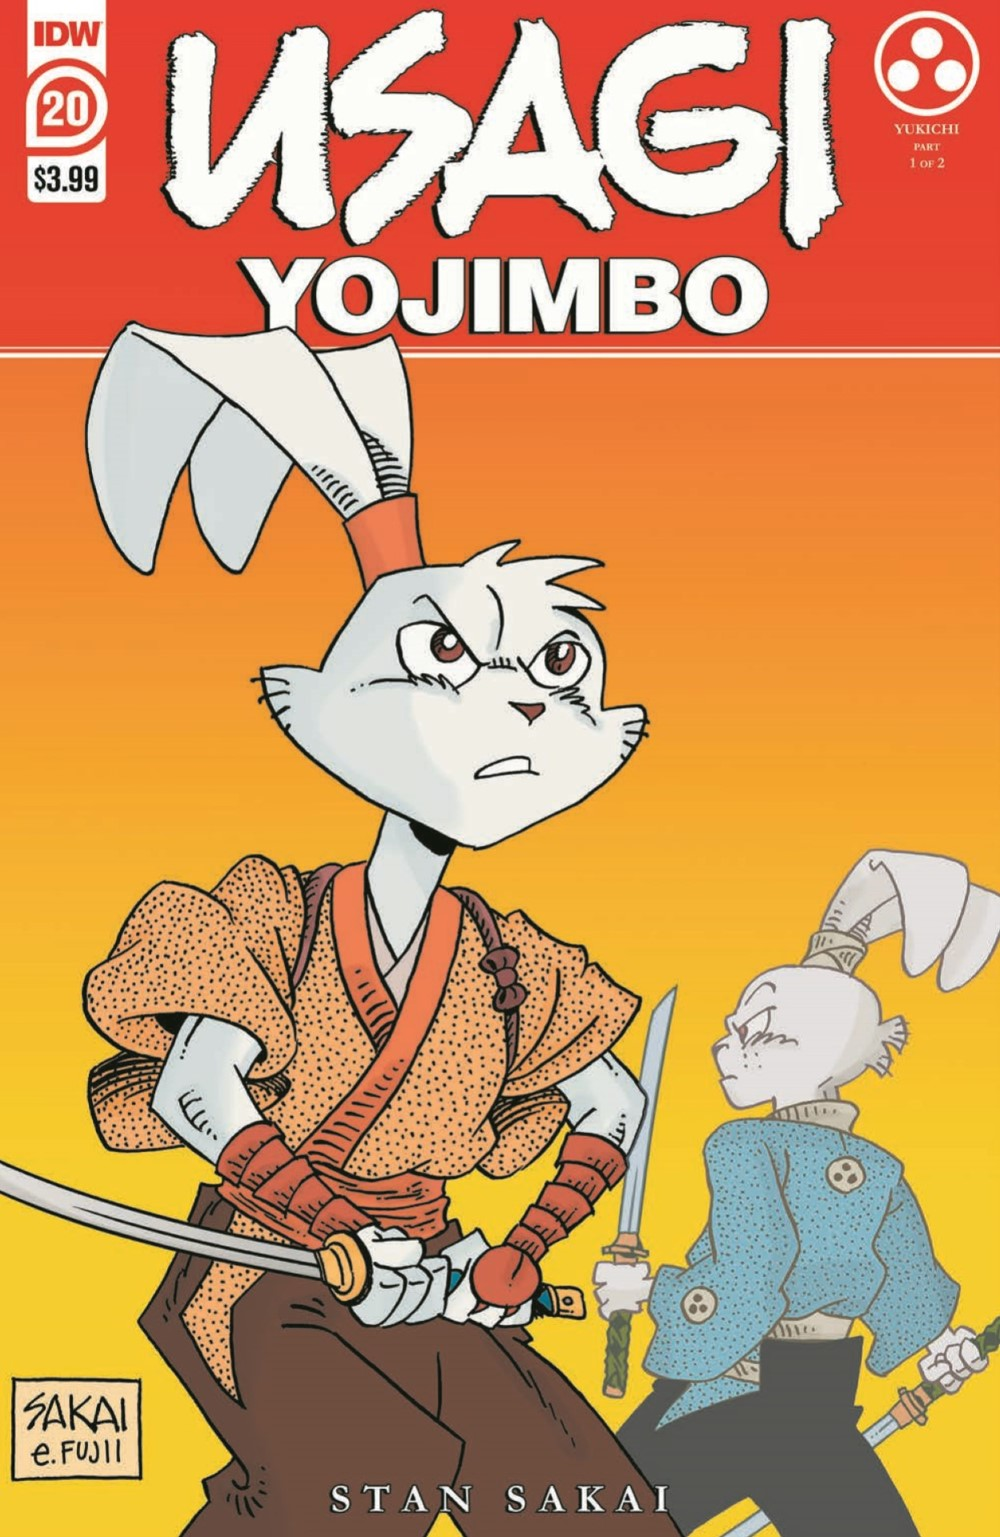 Usagi20_2nd_pr-1 ComicList: IDW Publishing New Releases for 07/28/2021